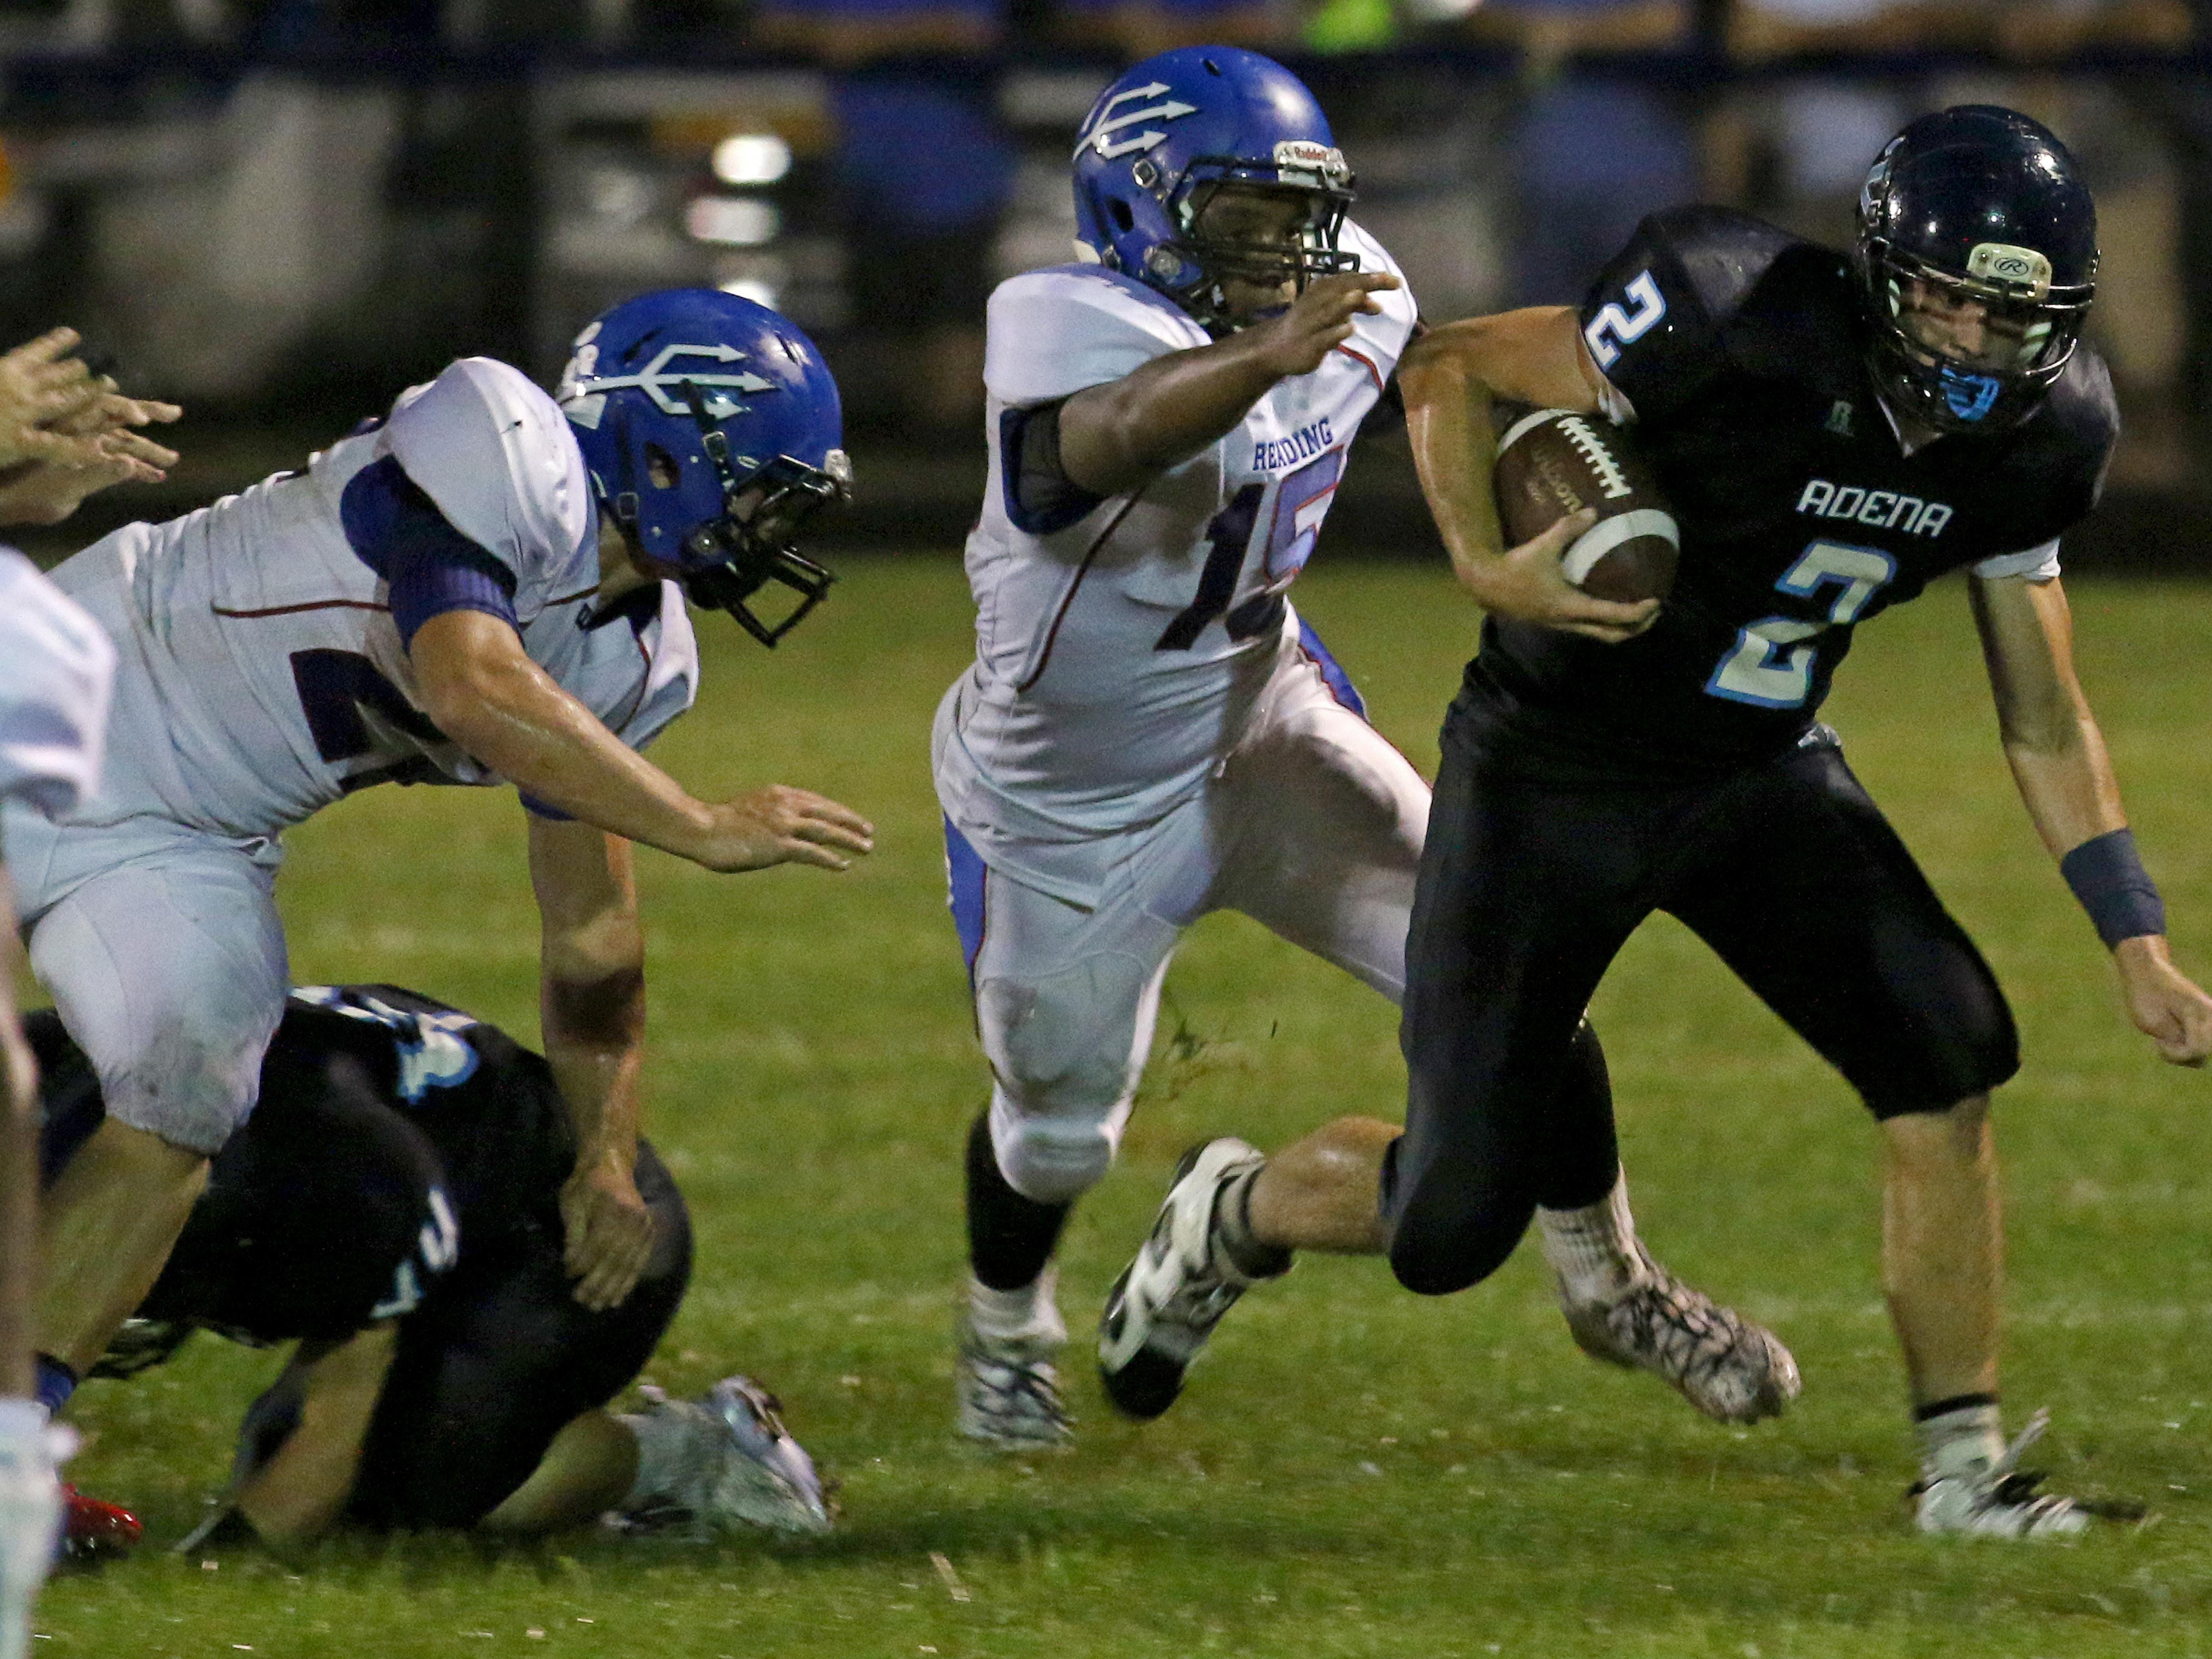 Adena's Cale Free breaks through a tackle against Cincinnati Reading, Friday night. Reading beat the Warriors, 41-12.